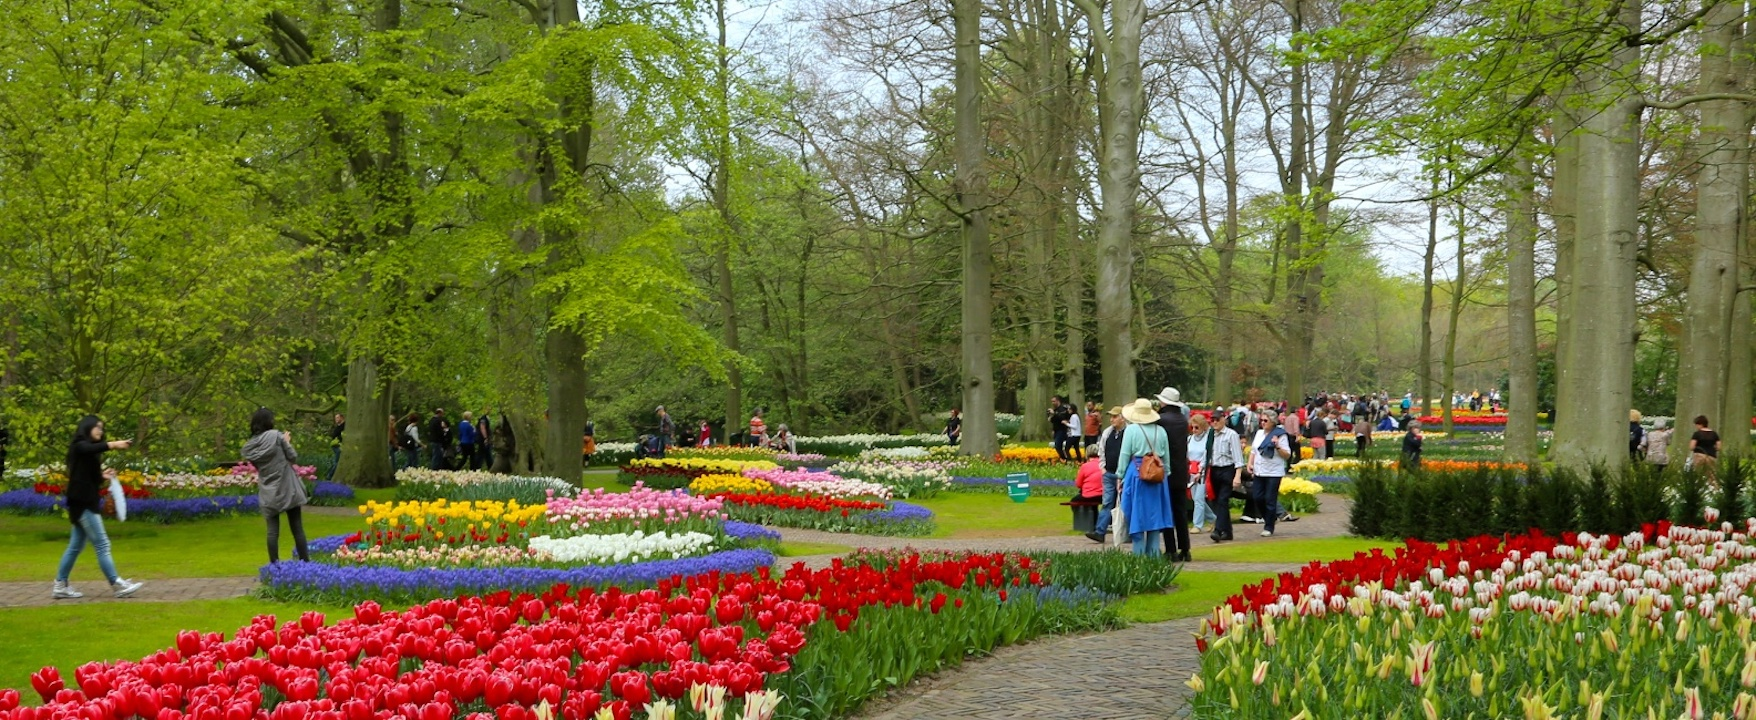 8 Day Netherlands & Belgium : Amsterdam - Antwerpen - Bruges or vice versa premium , Discover the best of Holland & Flanders